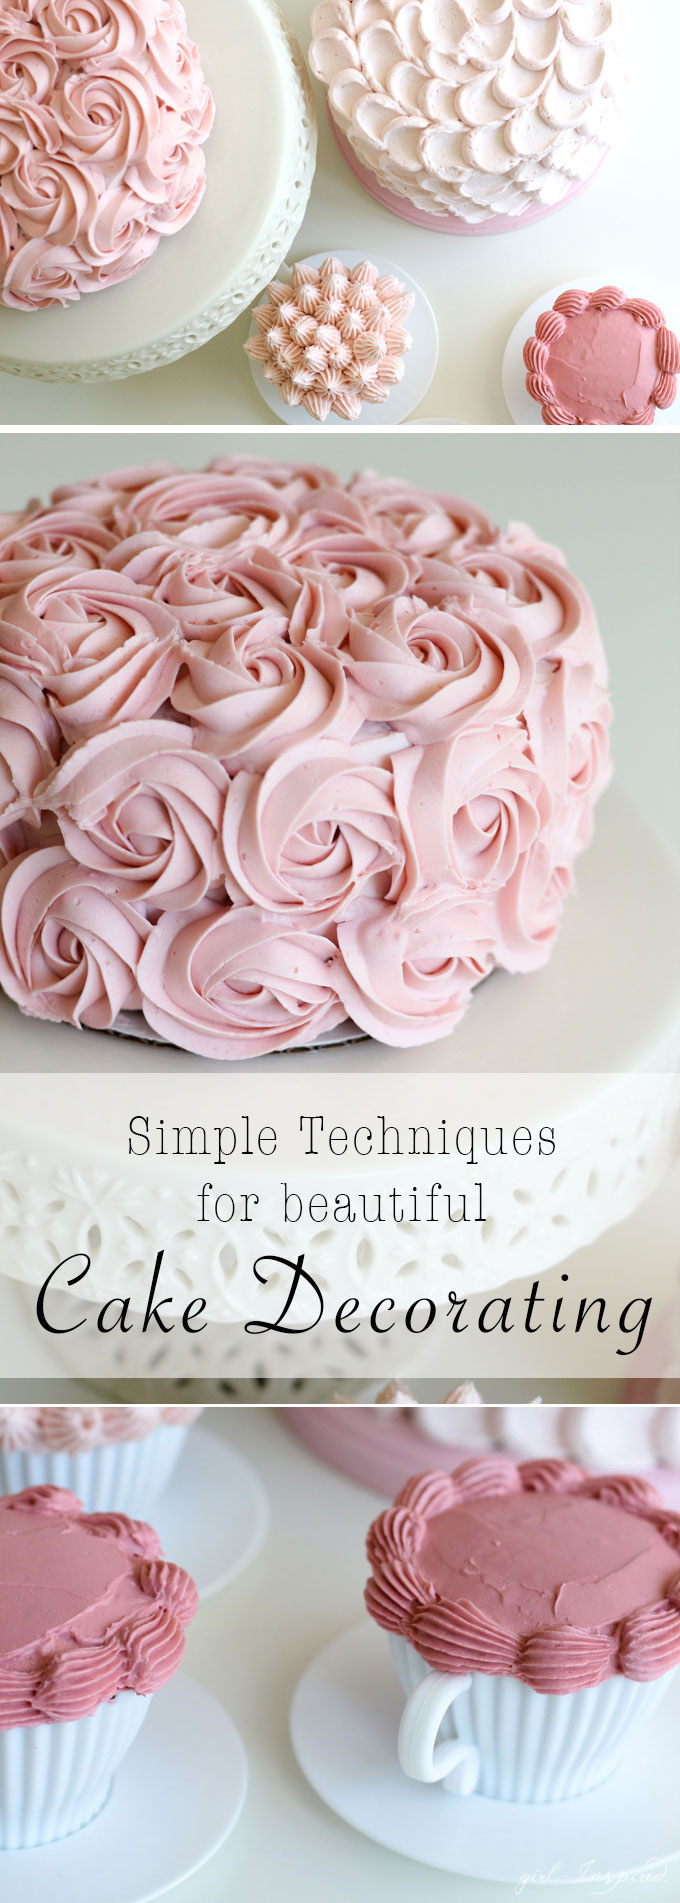 Cake Decoration Items Names : Simple and Stunning Cake Decorating Techniques - girl ...